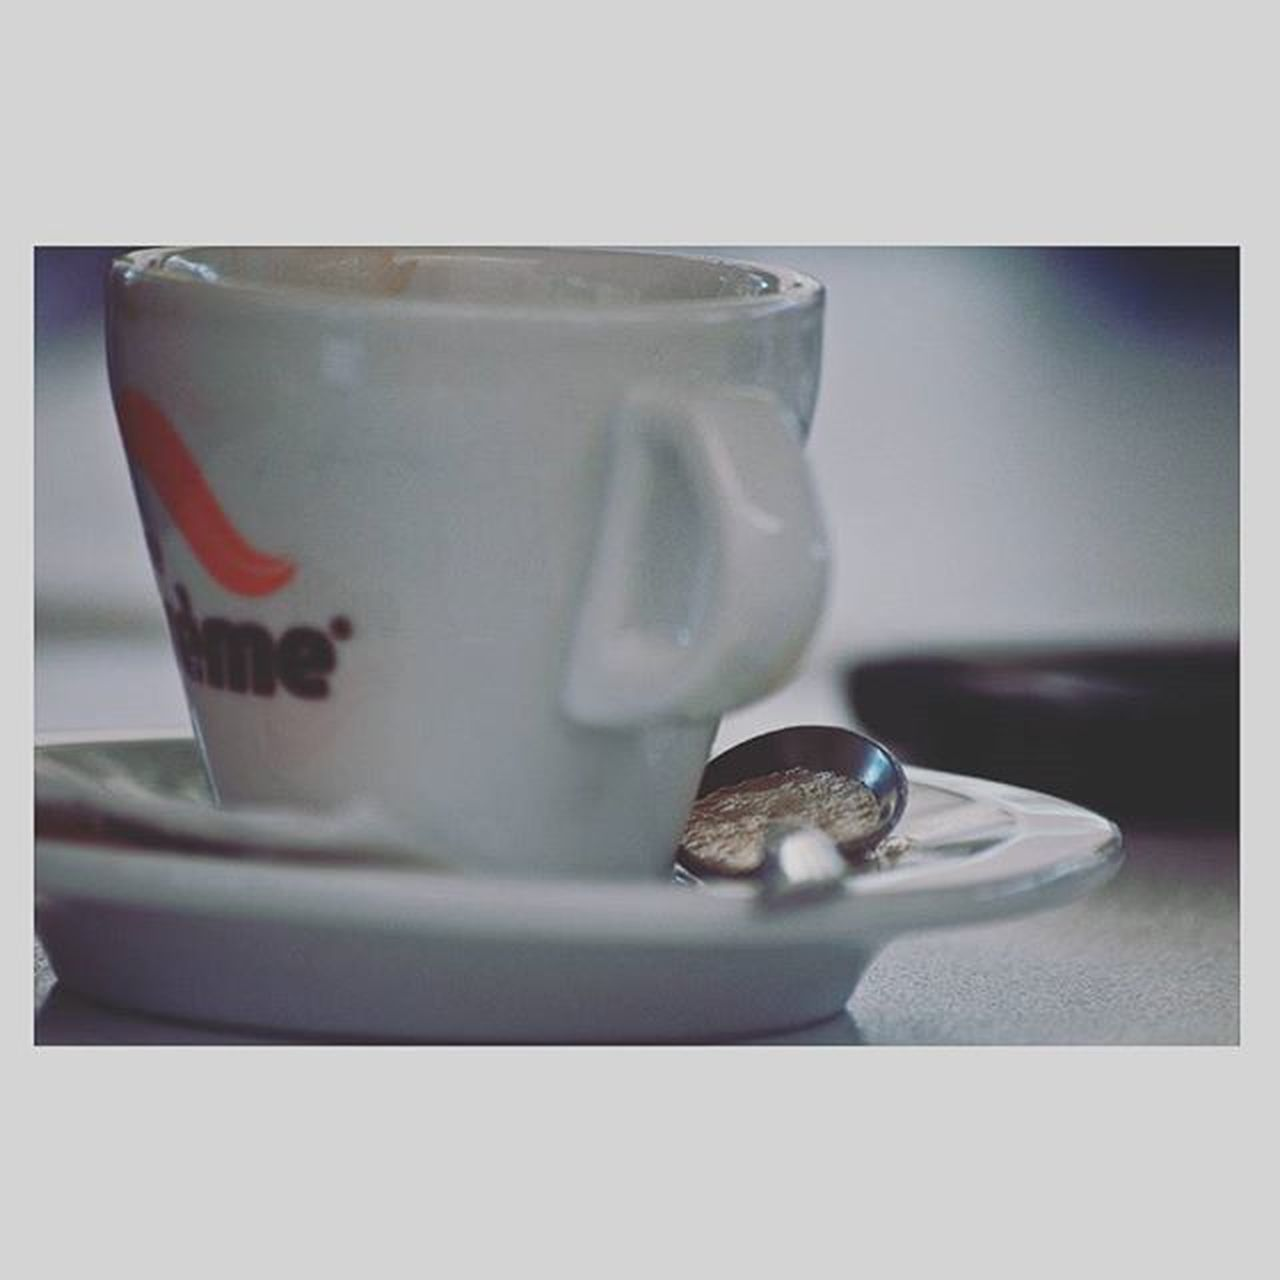 ☕ Coffee Coffeetime Coffeelover Coffeeaddict Caffè Piacere Pleasure Amici Friends Bff Scusa per Vedersi Loveforever Loveit Lovely Afternoon Afternoonsnack Buono con la Cannella Soymix